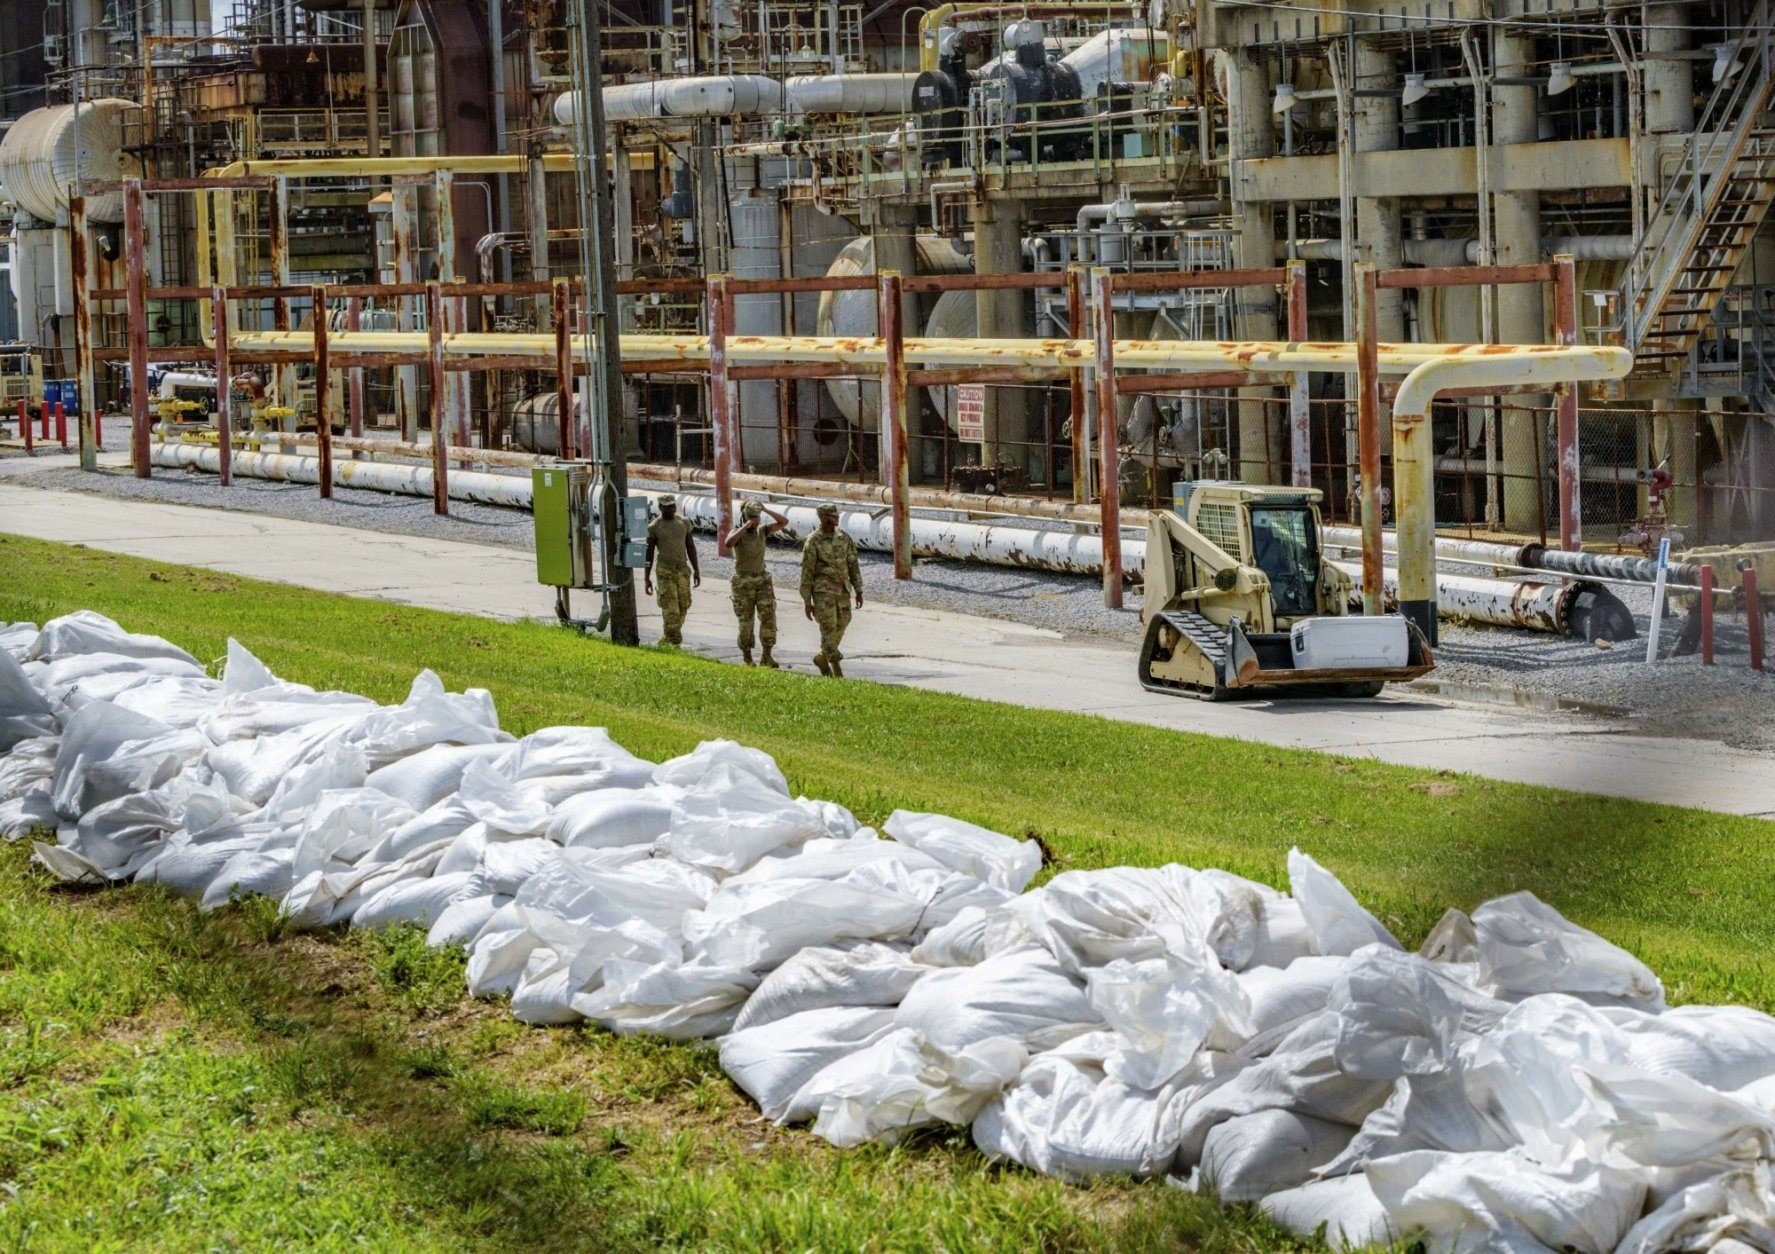 FILE - In this Thursday, July 11, 2019, file photo, soldiers with the U.S. Army National Guard work on adding sandbags to levees by the Chalmette Refining plant in Chalmette, La., ahead of Tropical Storm Barry. Barry could harm the Gulf Coast environment in a number of ways. But scientists say it's hard to predict how severe the damage will be. (AP Photo/Matthew Hinton, File)